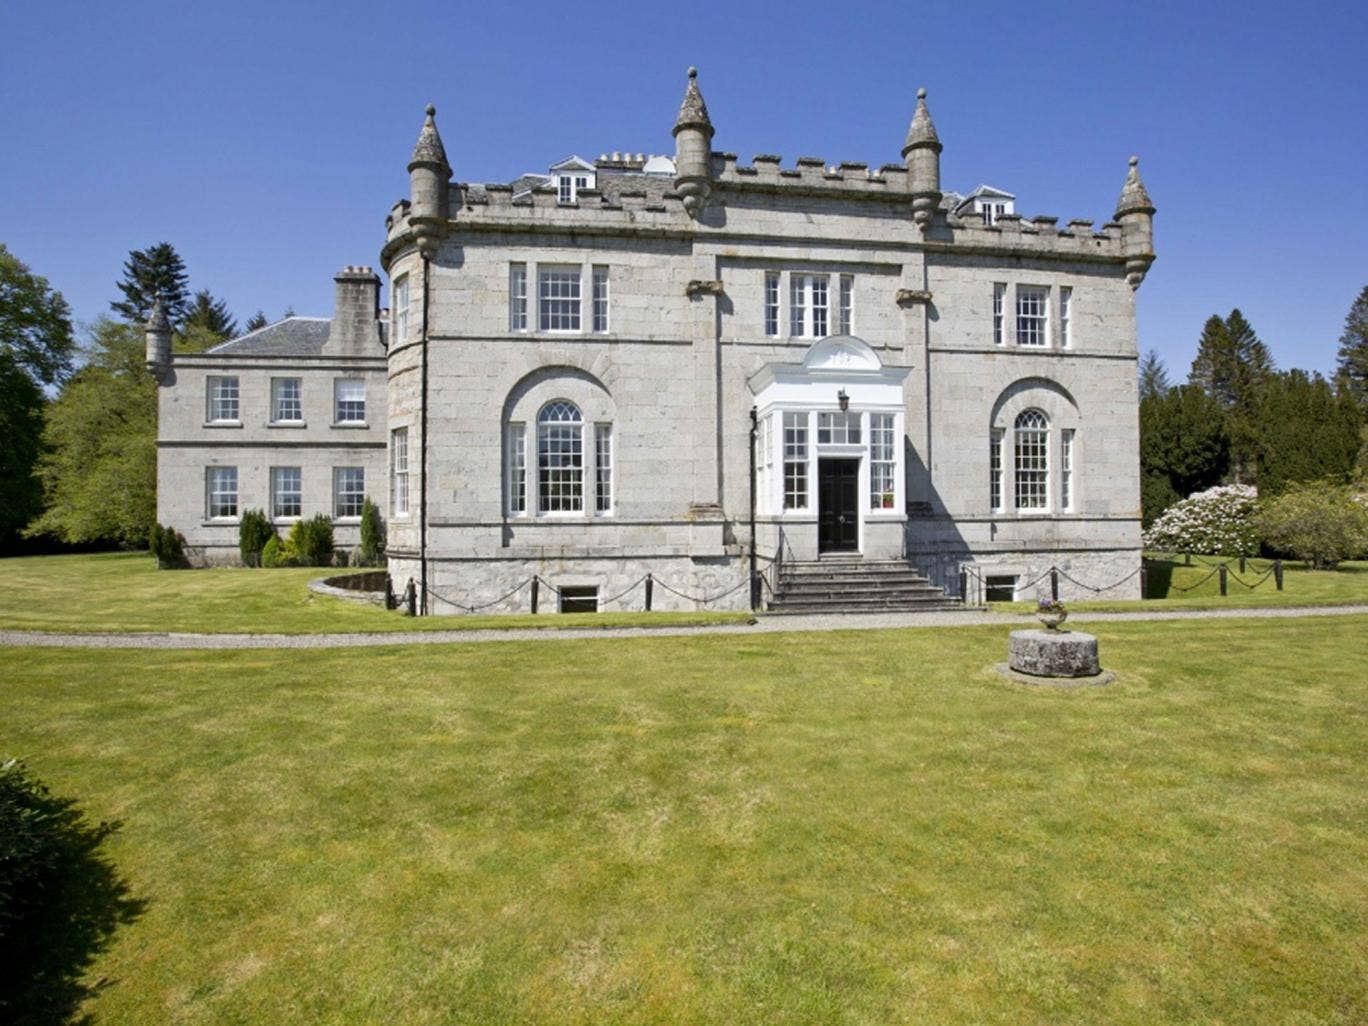 The sporting estate at Laggan in Inverness-shire is on the market for £7.5m